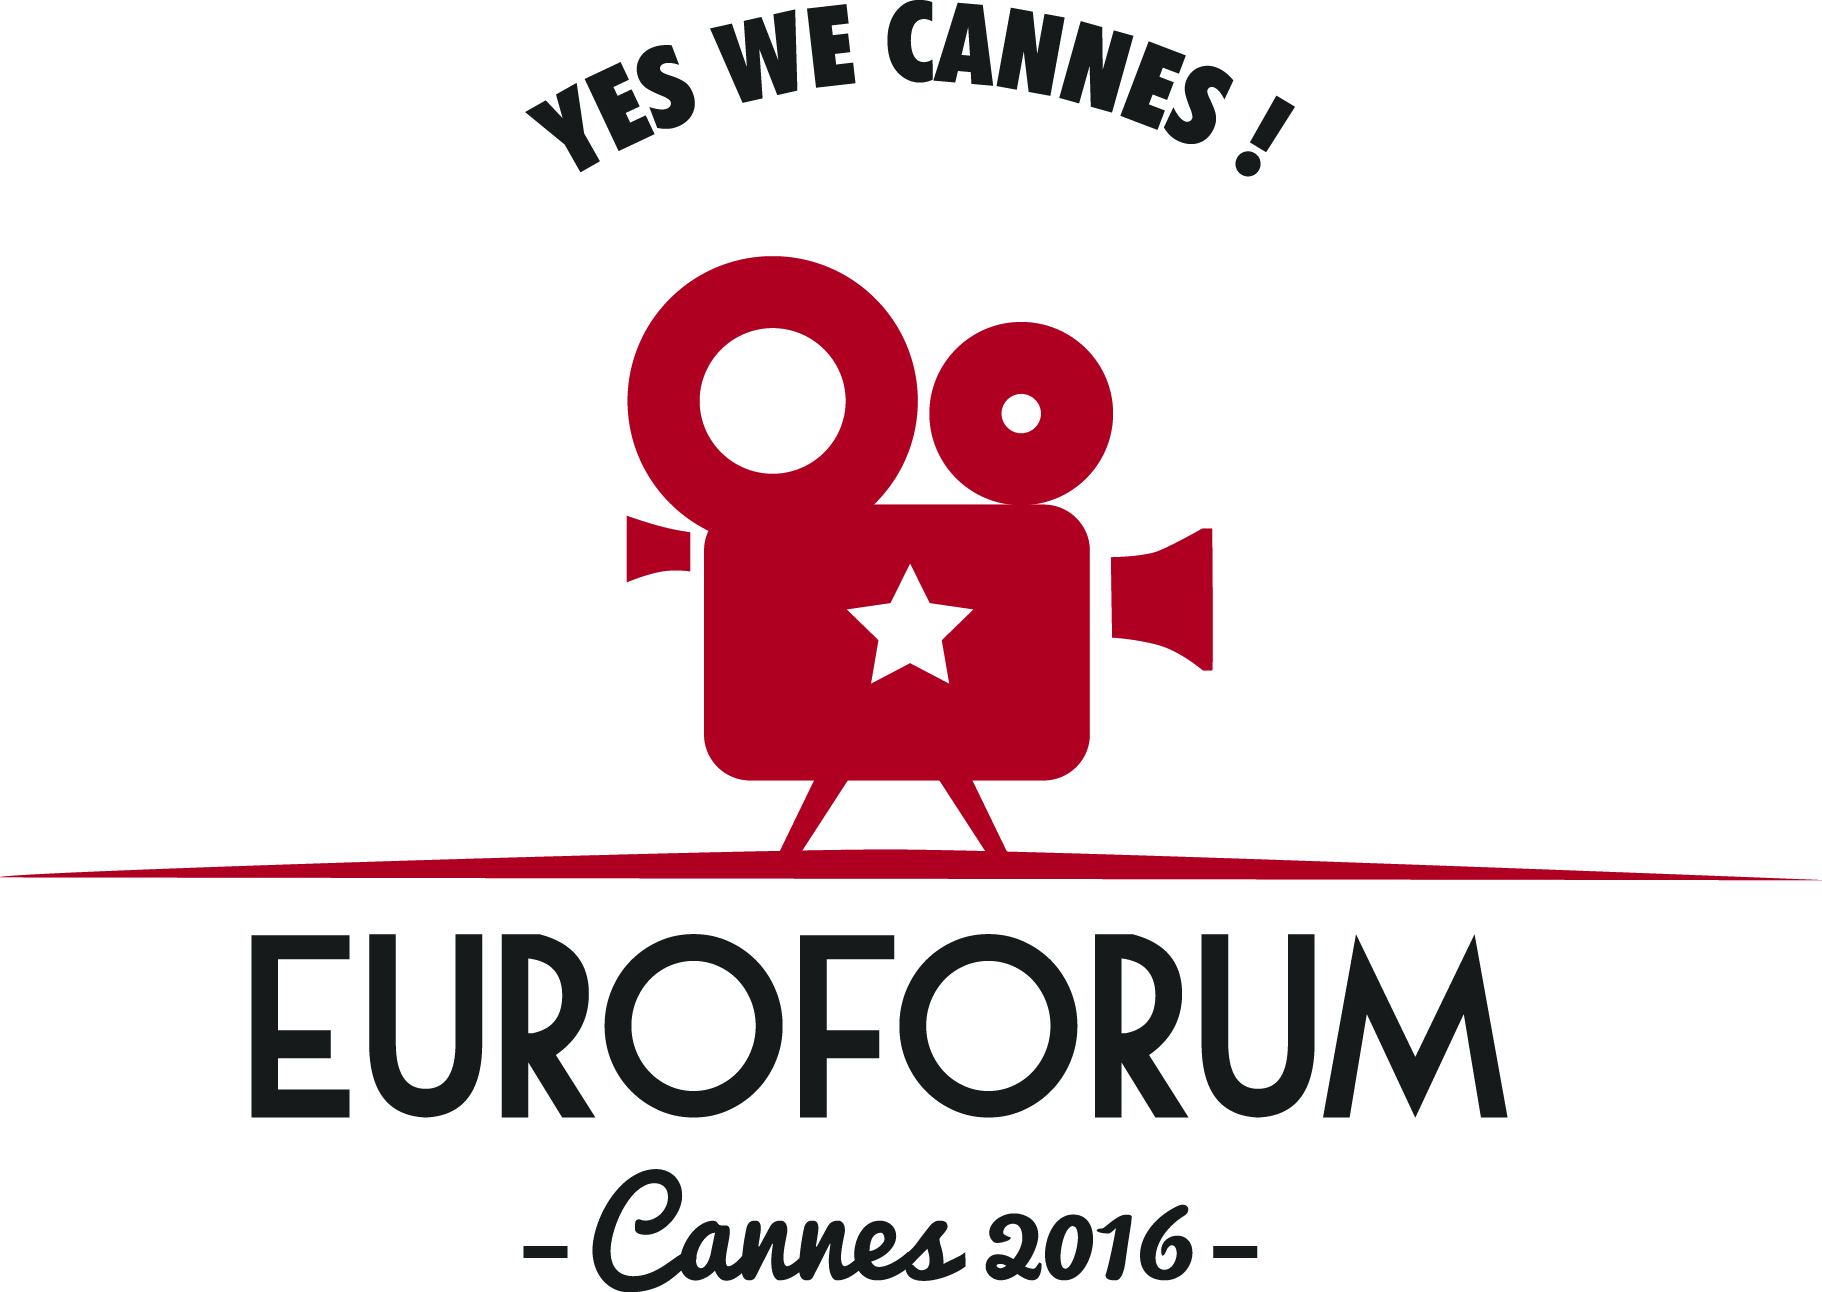 Cannes Destination LOGO-EUROFORUM